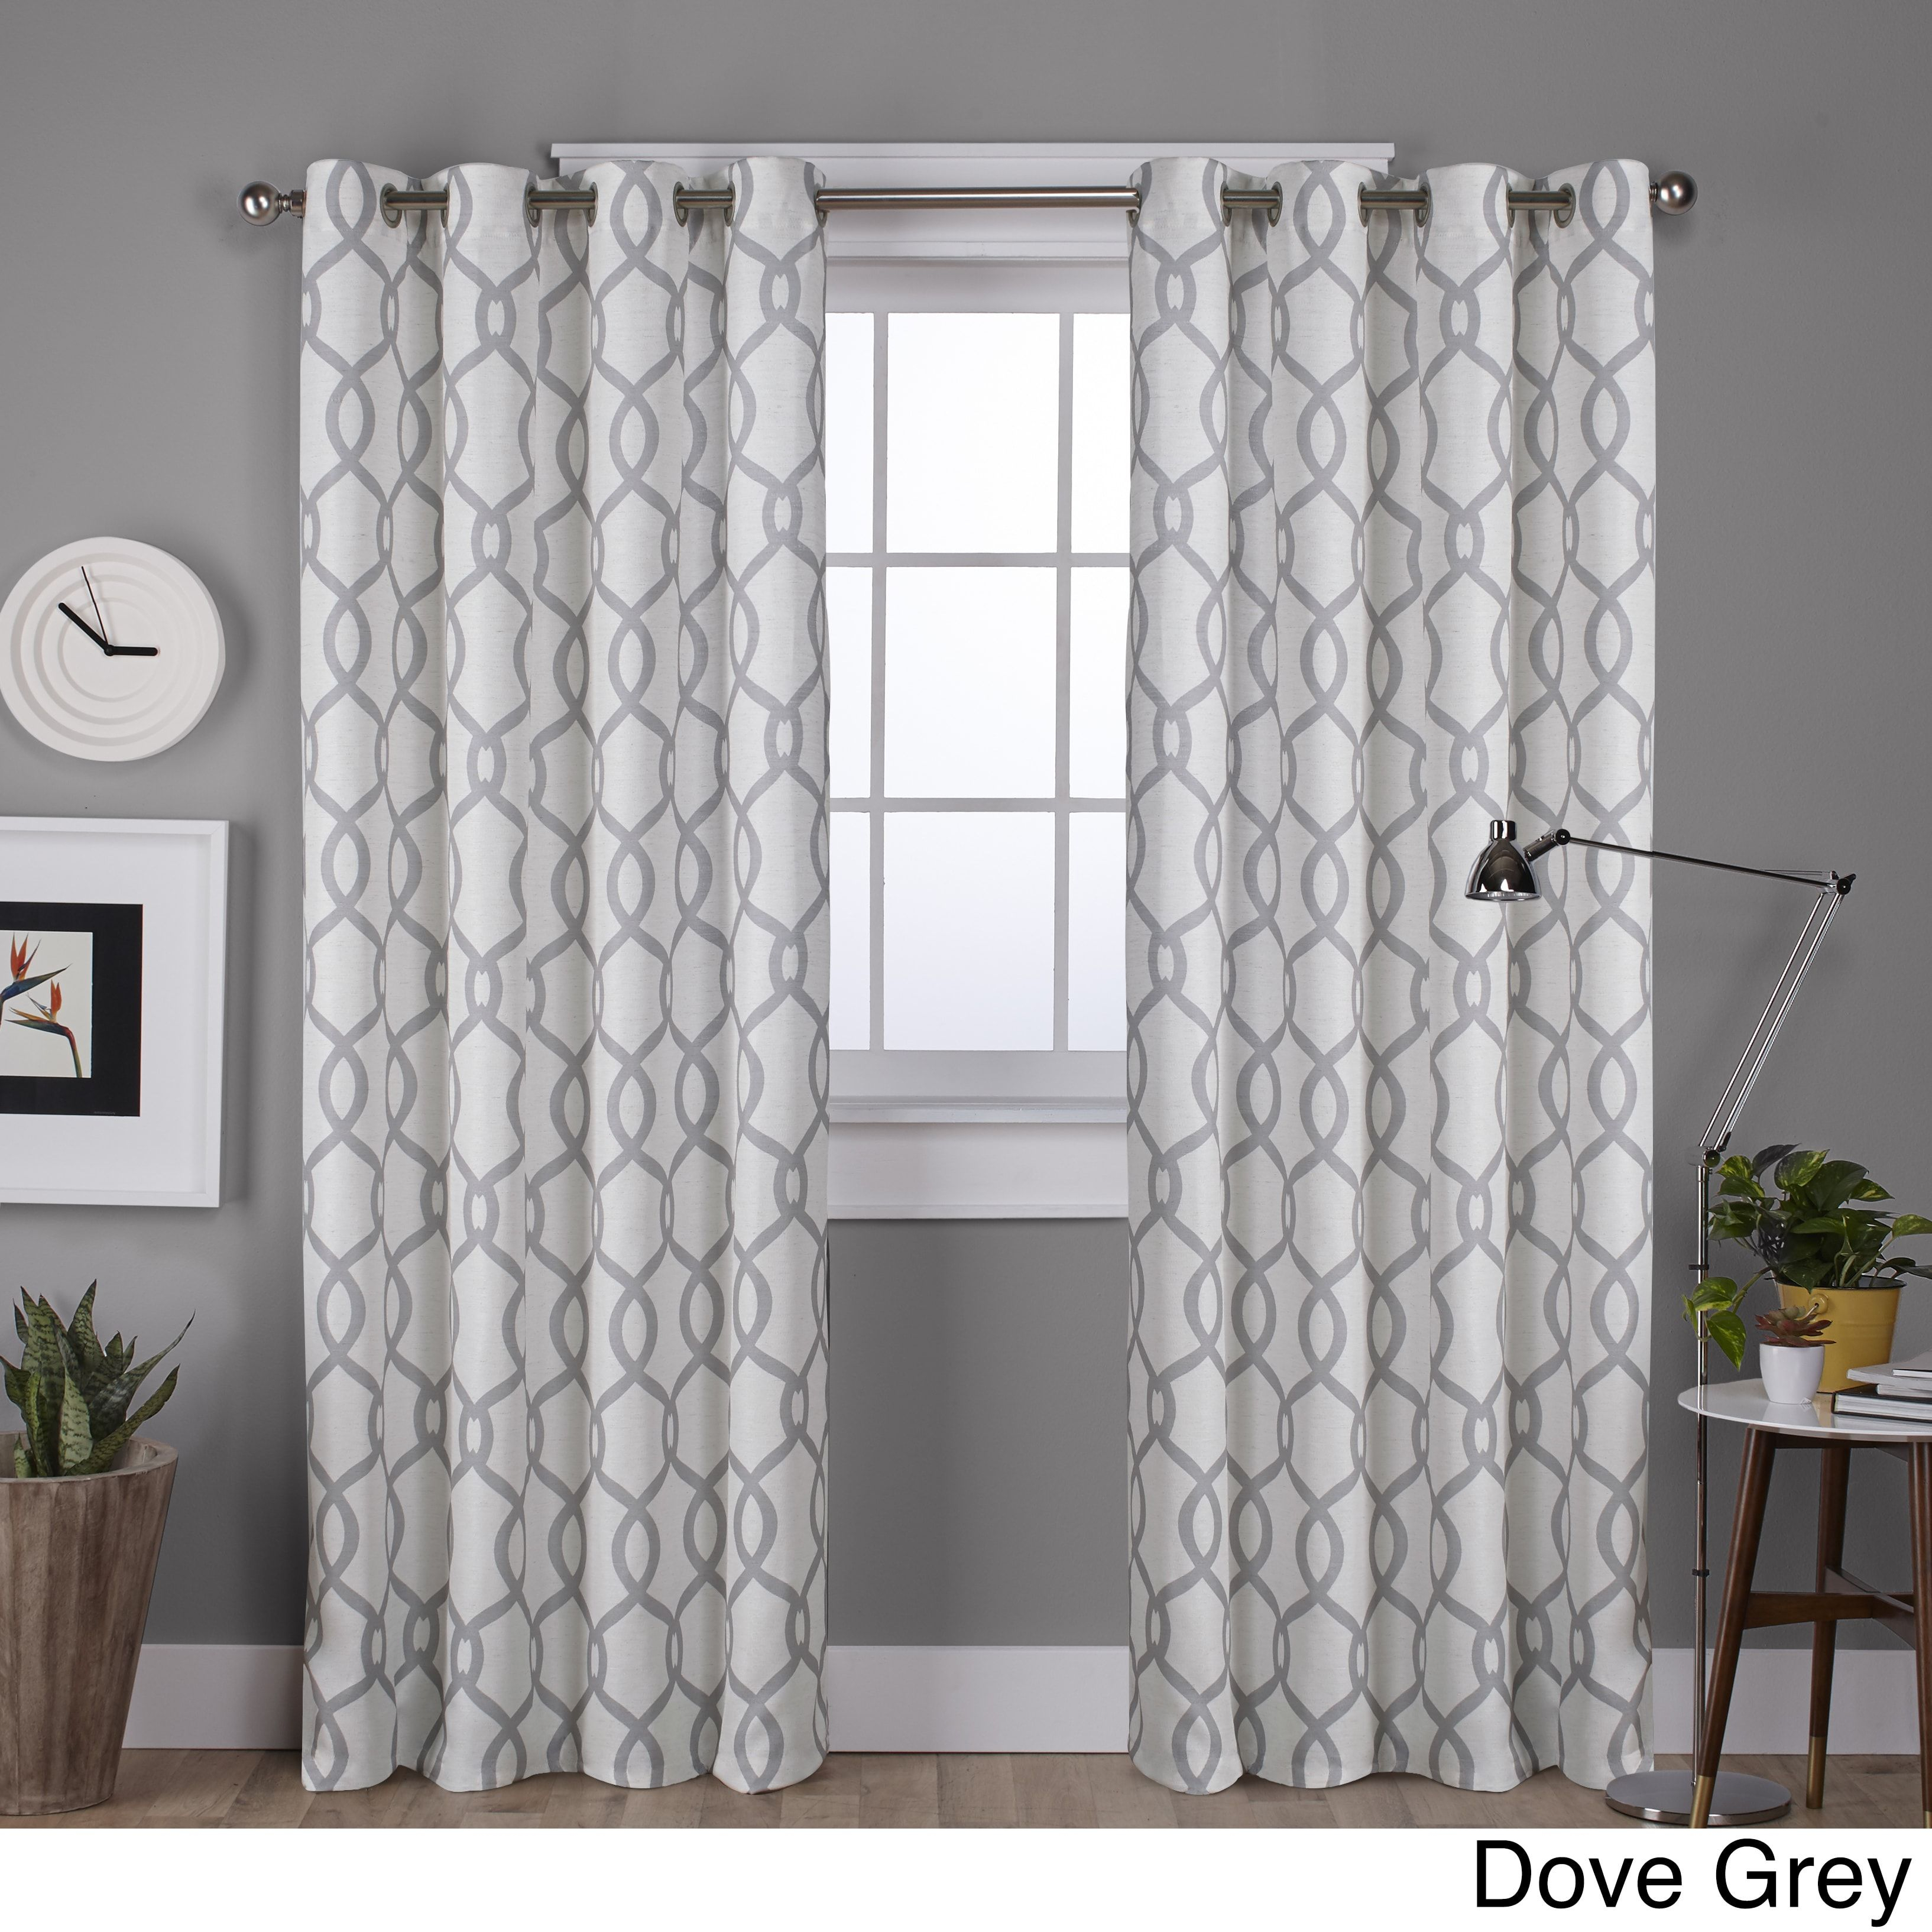 Ati Home Kochi Linen Blend Grommet Top Curtain Panel Pair Pertaining To Archaeo Slub Textured Linen Blend Grommet Top Curtains (Image 15 of 20)